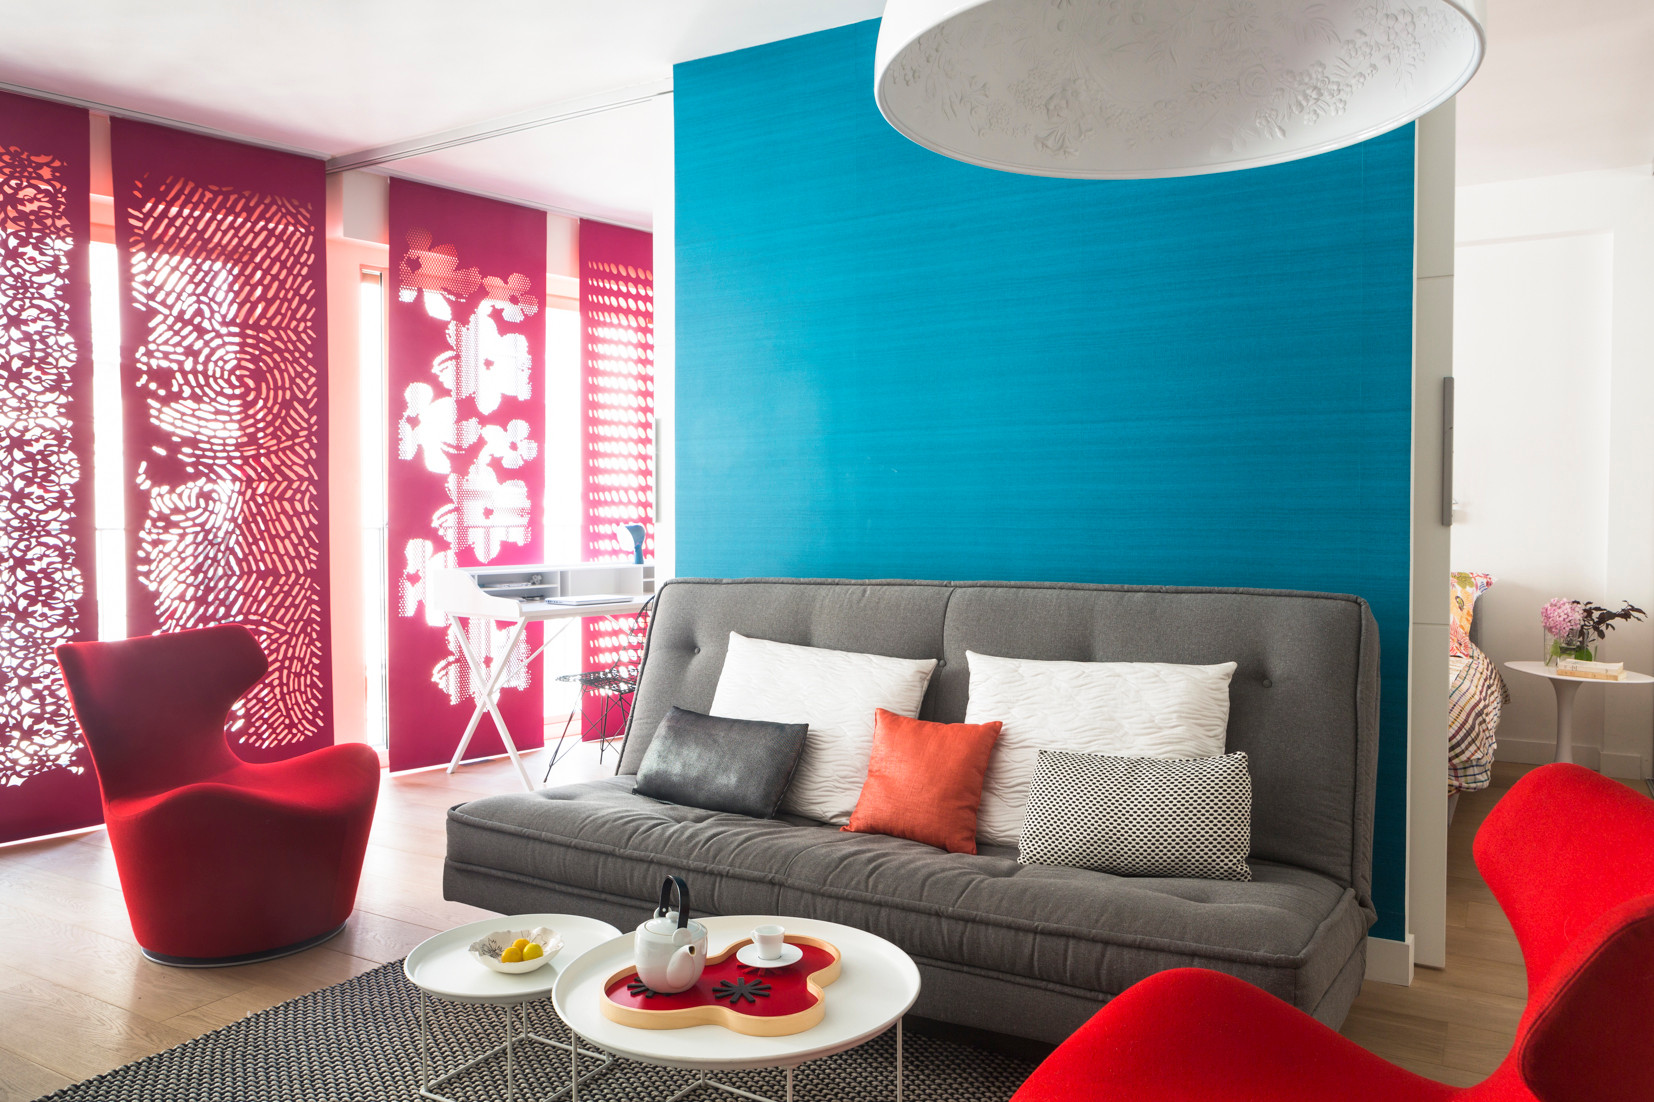 Teal And Red Houzz, Teal And Red Living Room